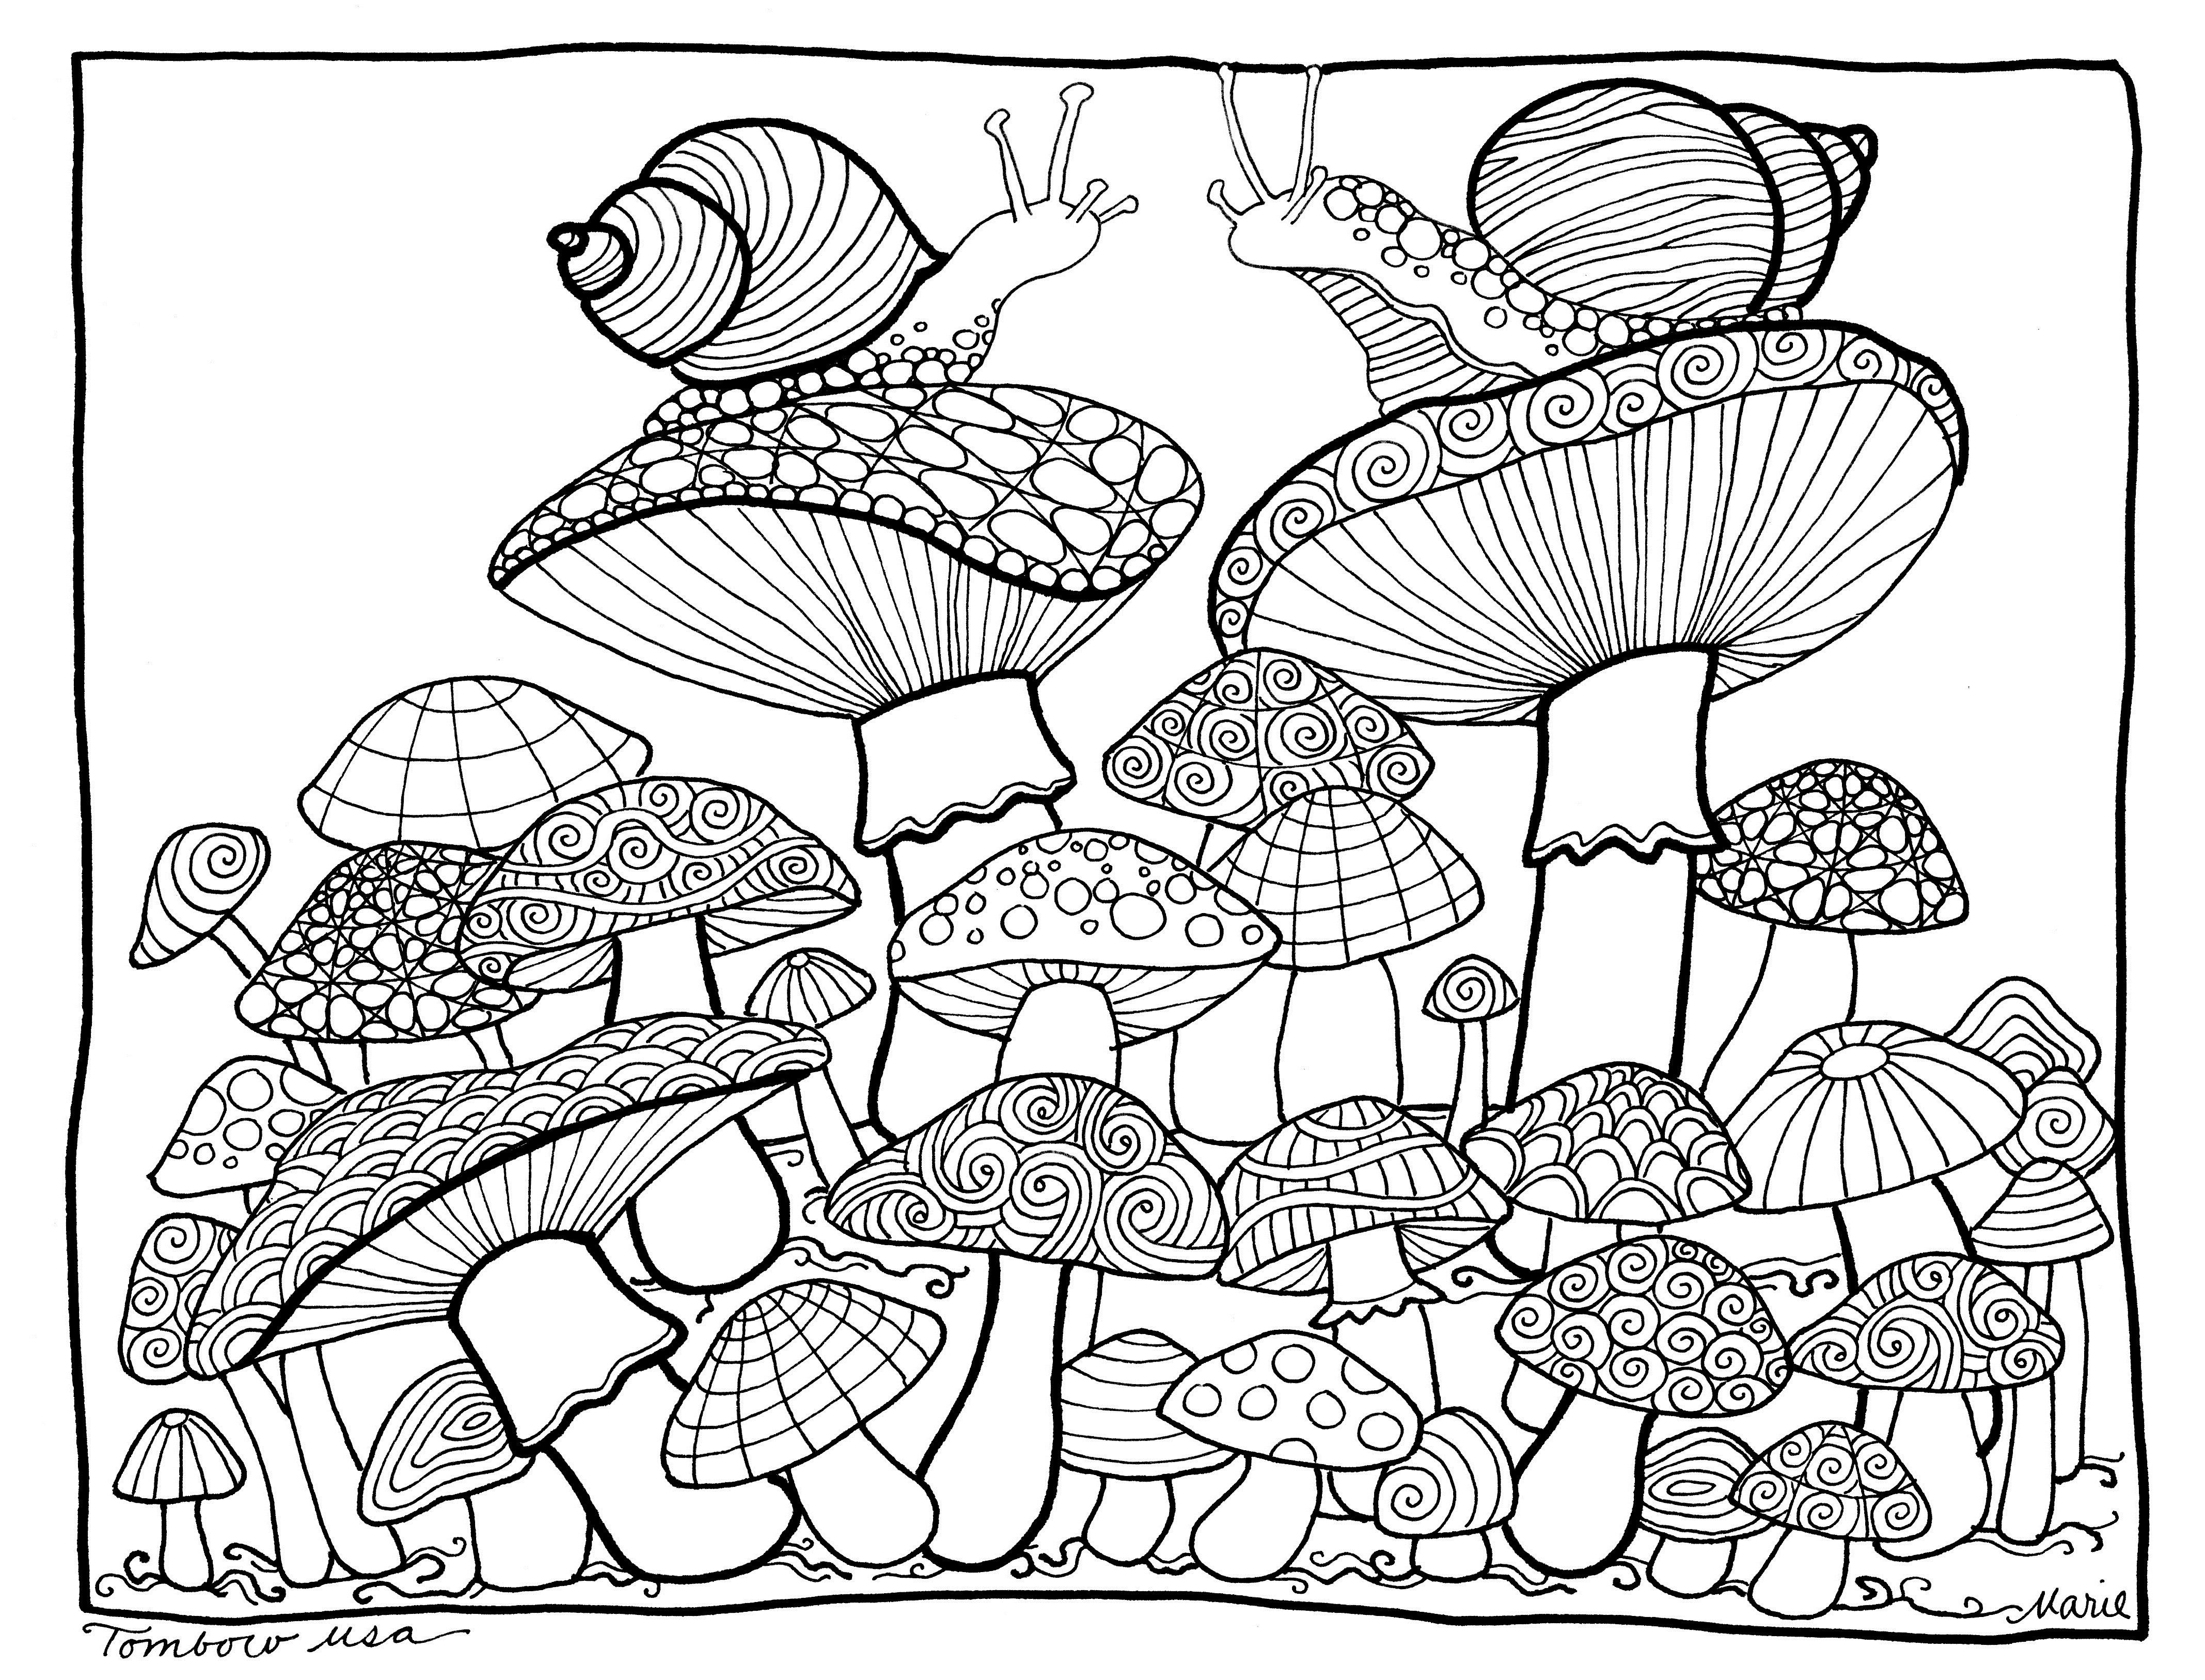 Mushrooms Coloring Pagetombow Usa | Paper | Coloring Pages, Free - Free Printable Mushroom Coloring Pages